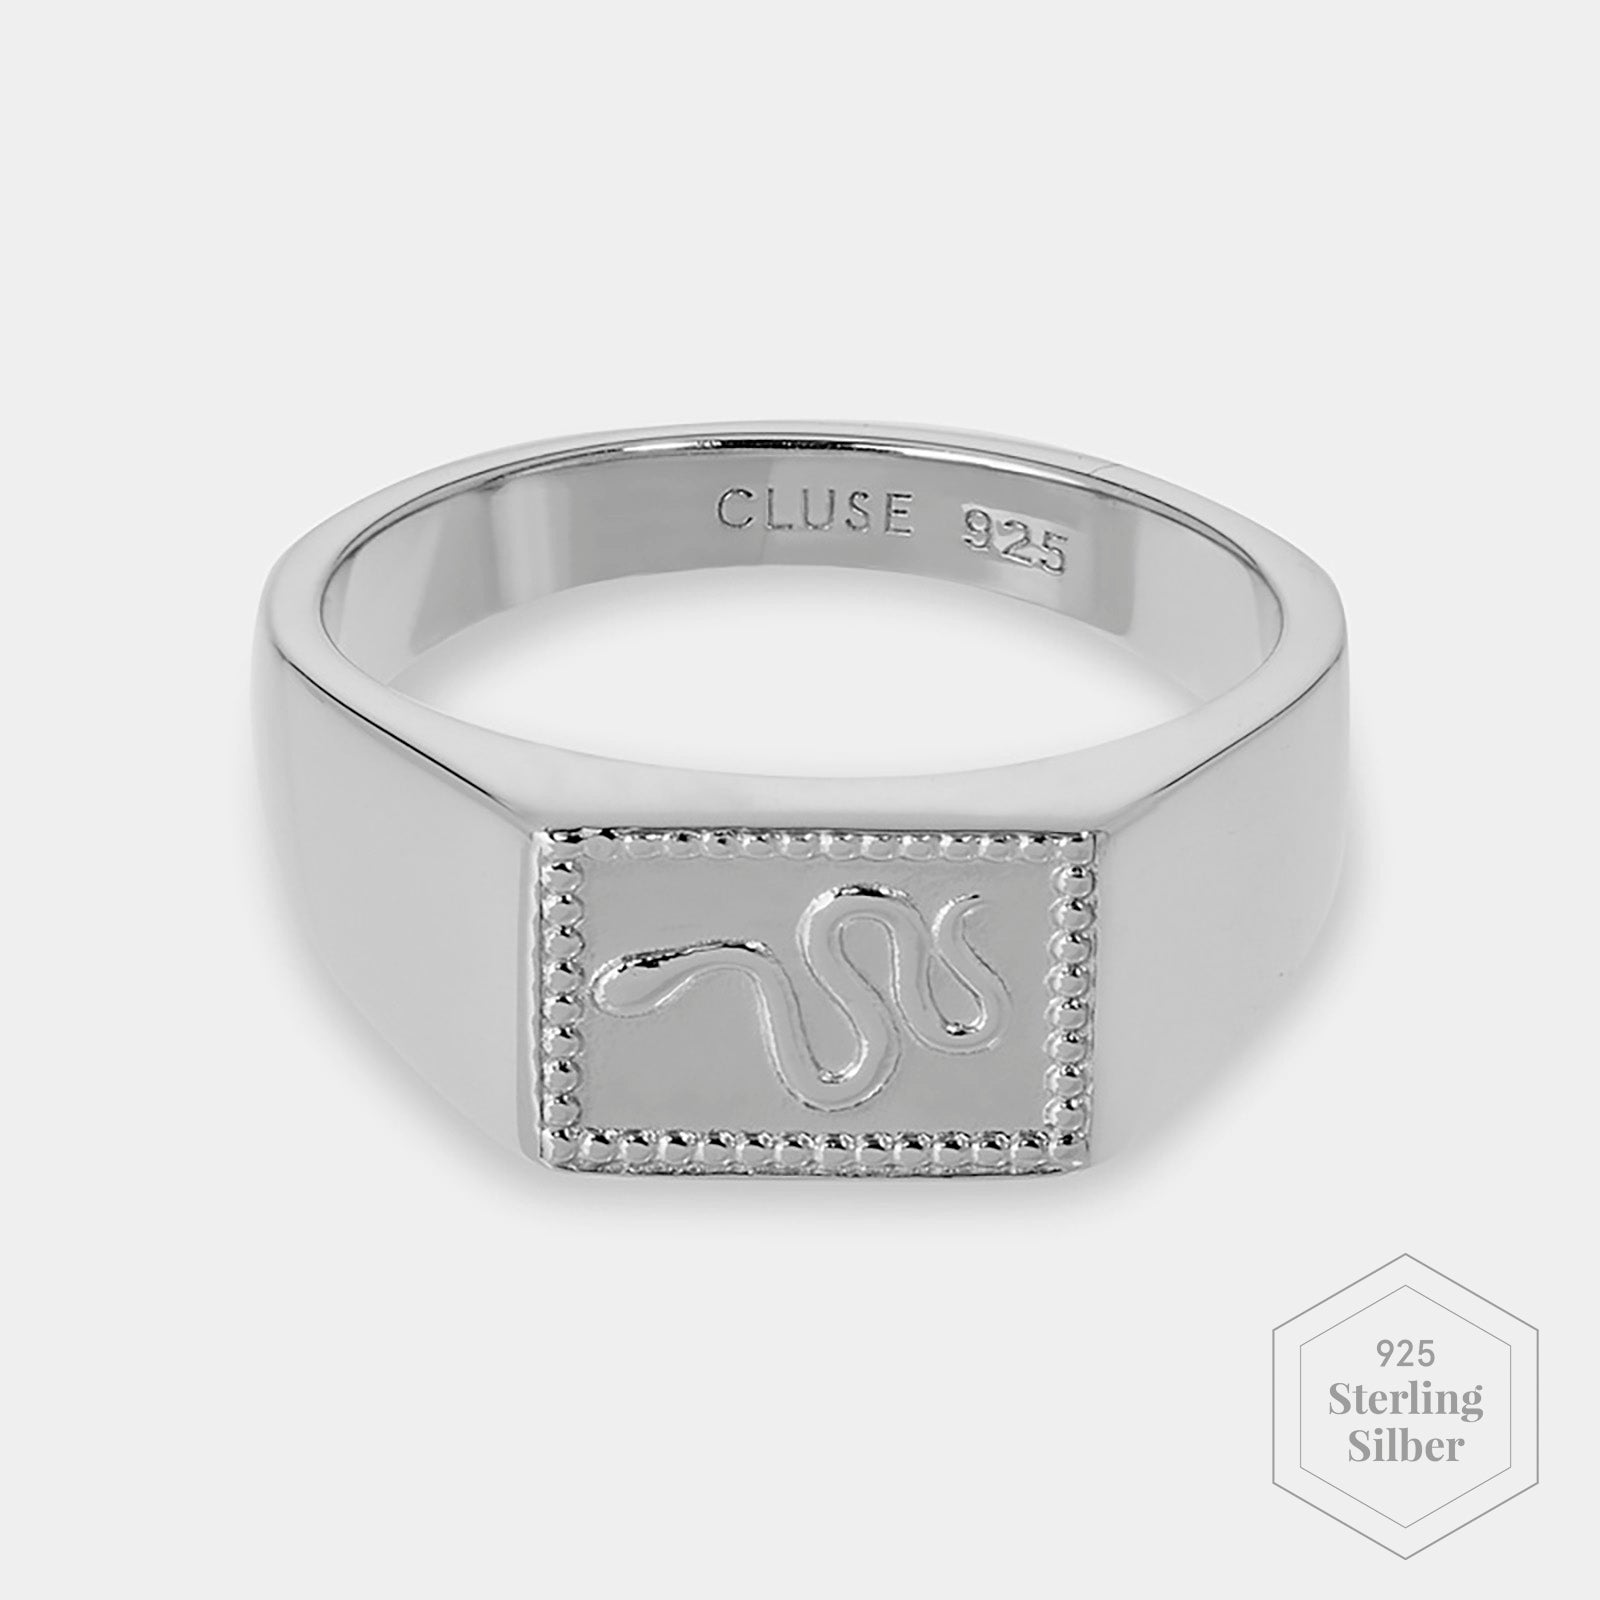 CLUSE Force Tropicale Silver Signet Rectangular Ring 54 CLJ42012 - 54 - Ringgröße 54